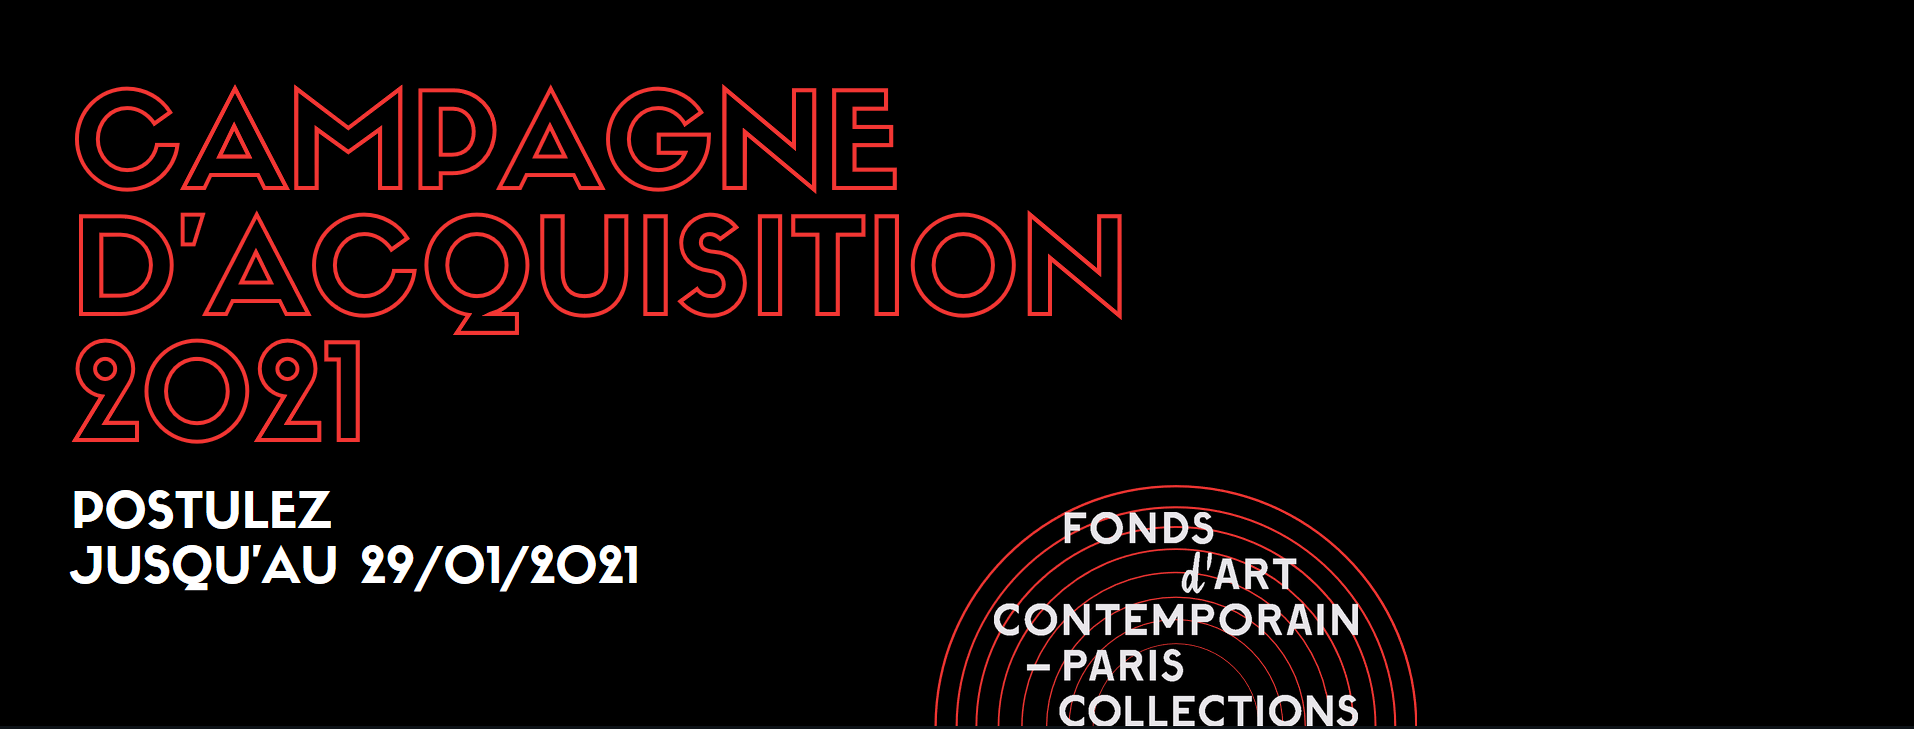 CAMPAGNE D'ACQUISITION 2021 DU FONDS D'ART CONTEMPORAIN – PARIS COLLECTIONS